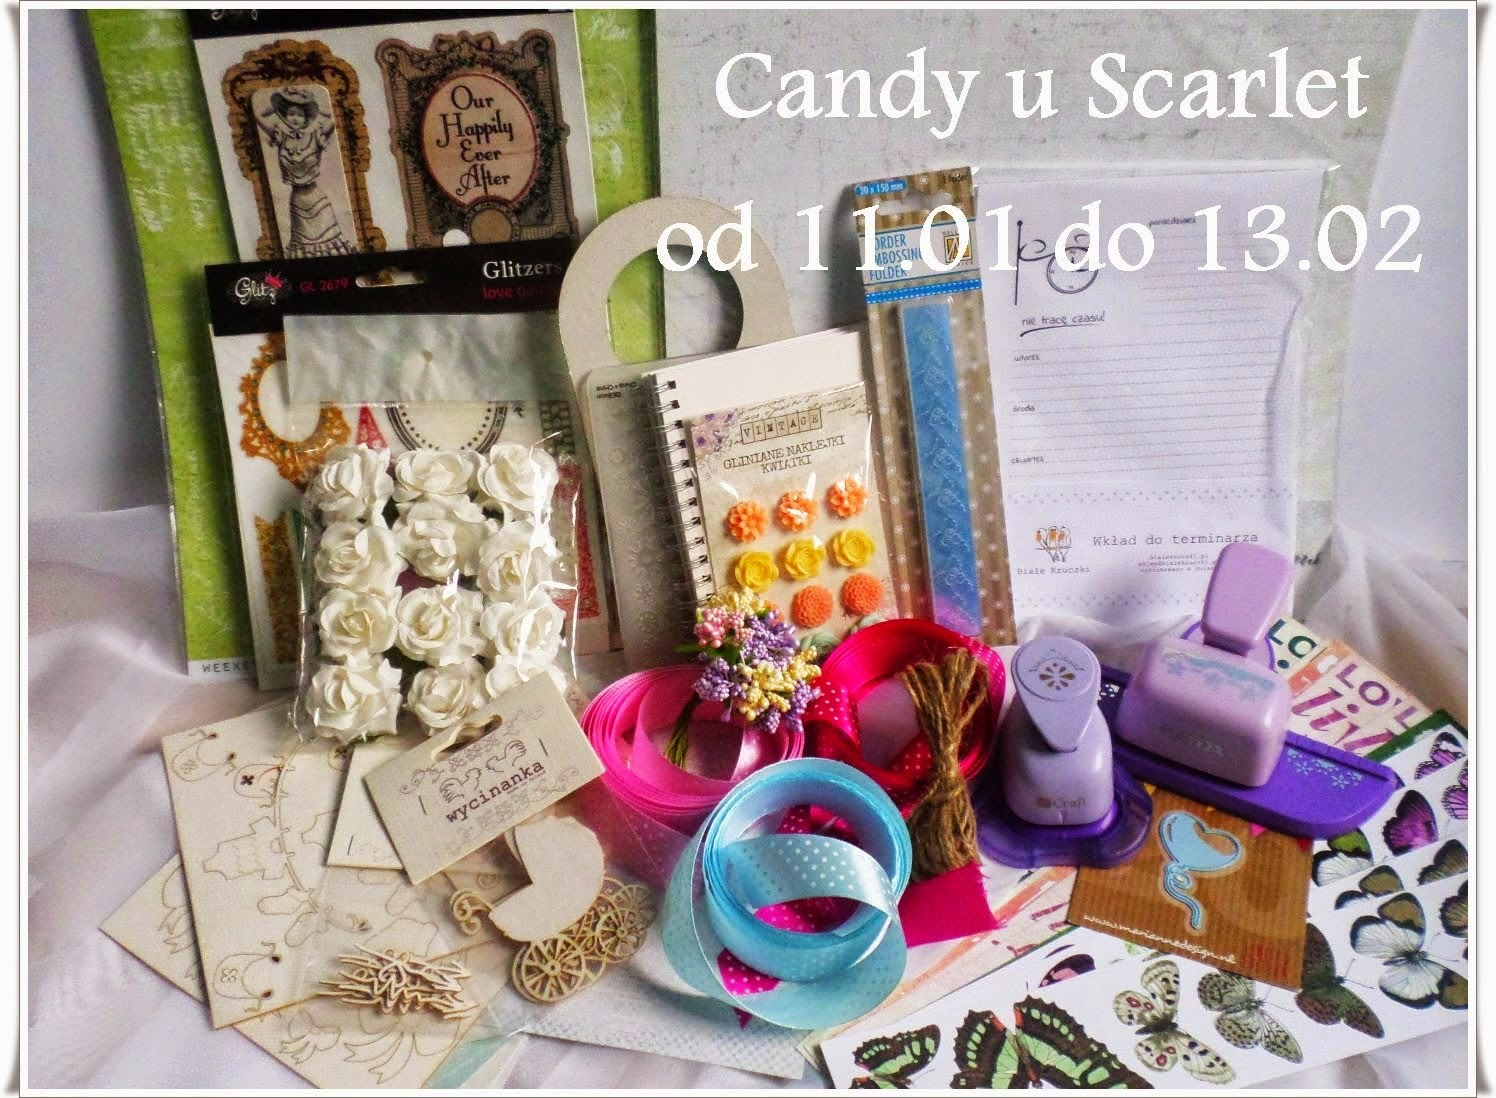 Candy do 13.02